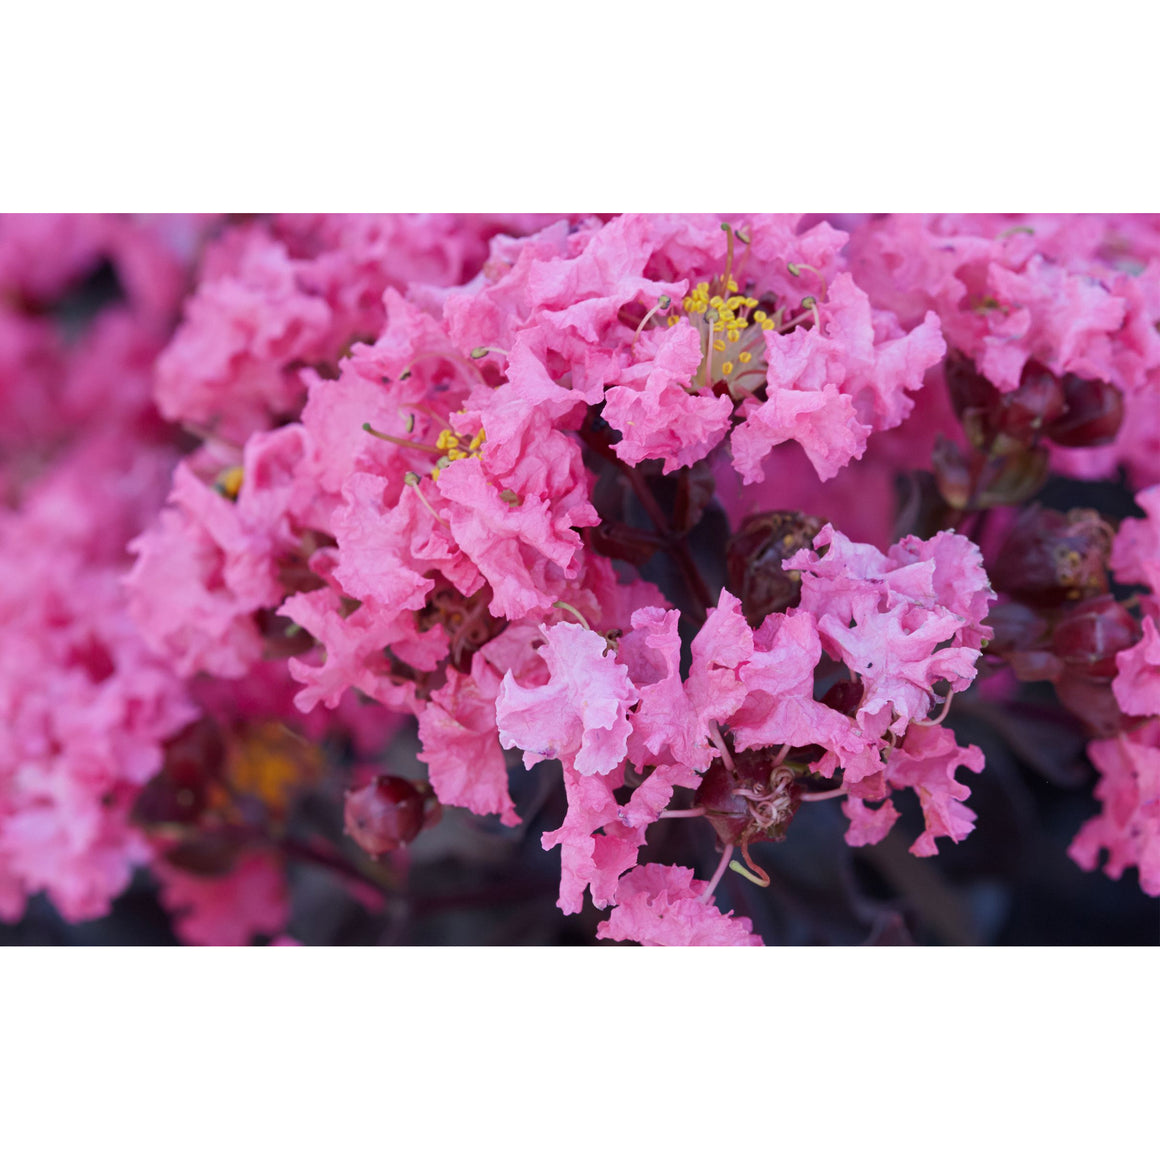 Black Diamond Crape Myrtle (Shell Pink) Plant - 2.25 Gallon